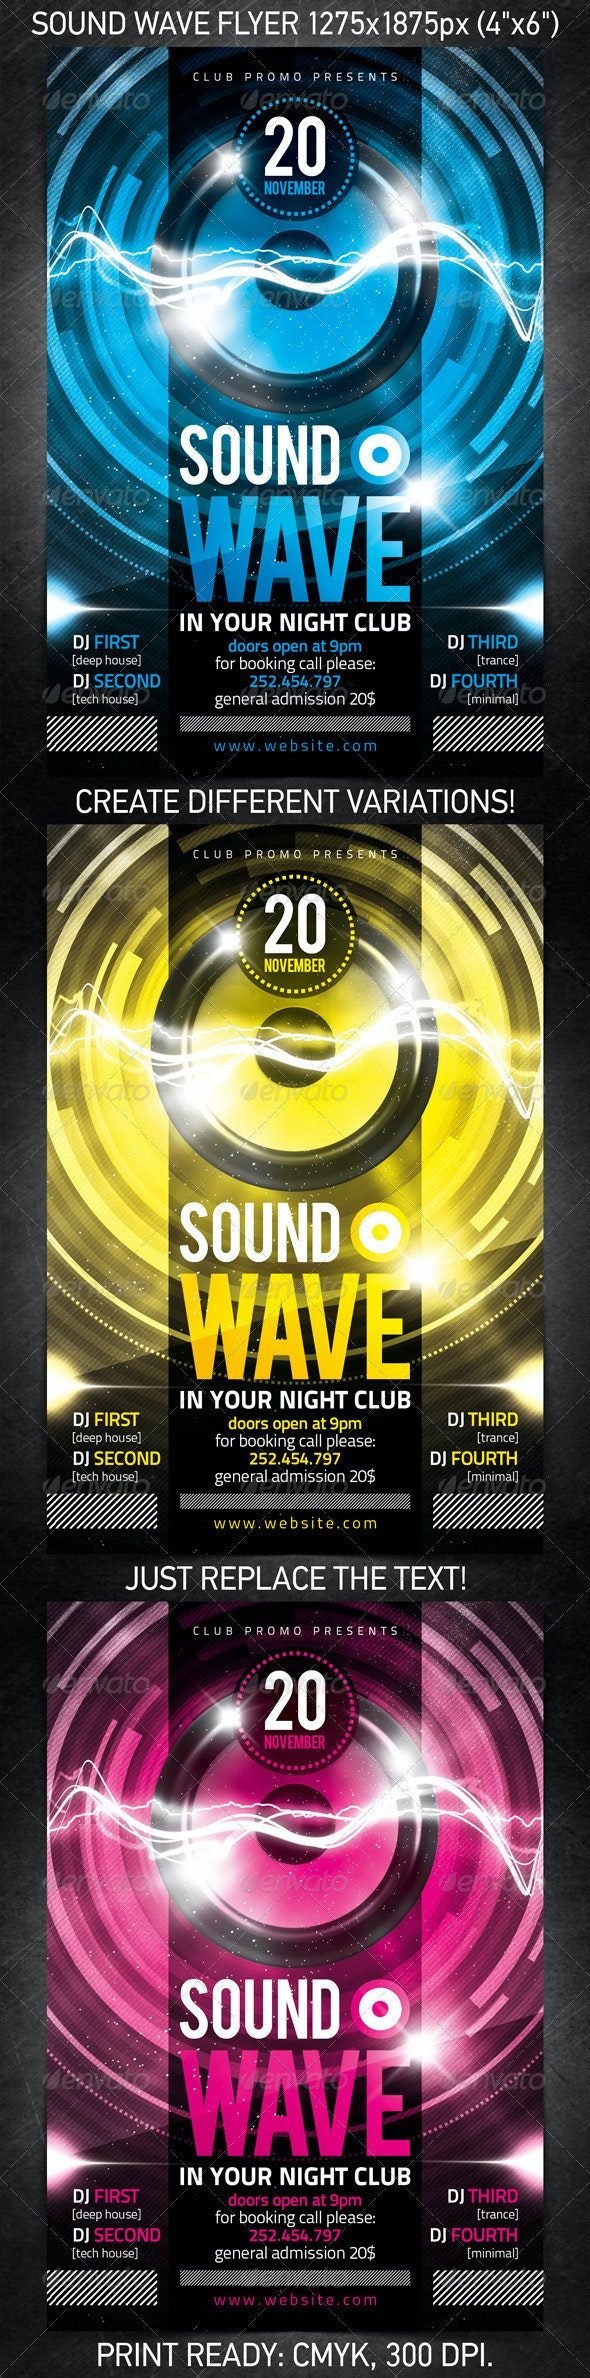 Sound Wave Party Flyer - Clubs & Parties Events